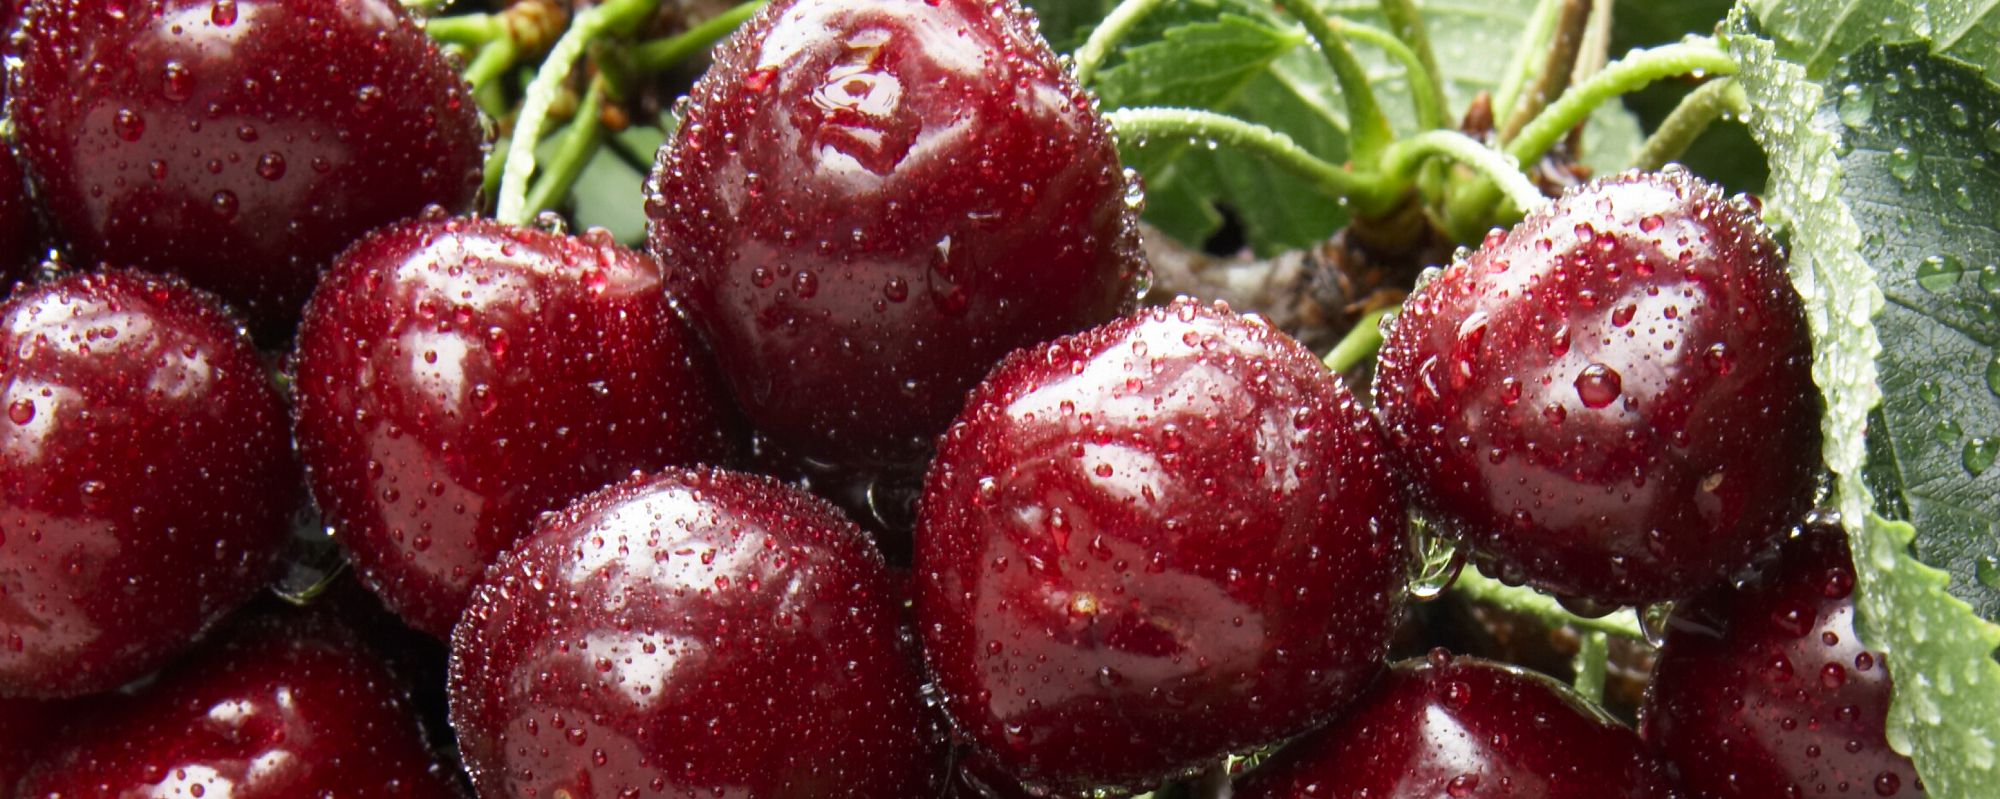 BC Tree Fruits Cooperative Anticipating Record Cherry Volumes for 2018